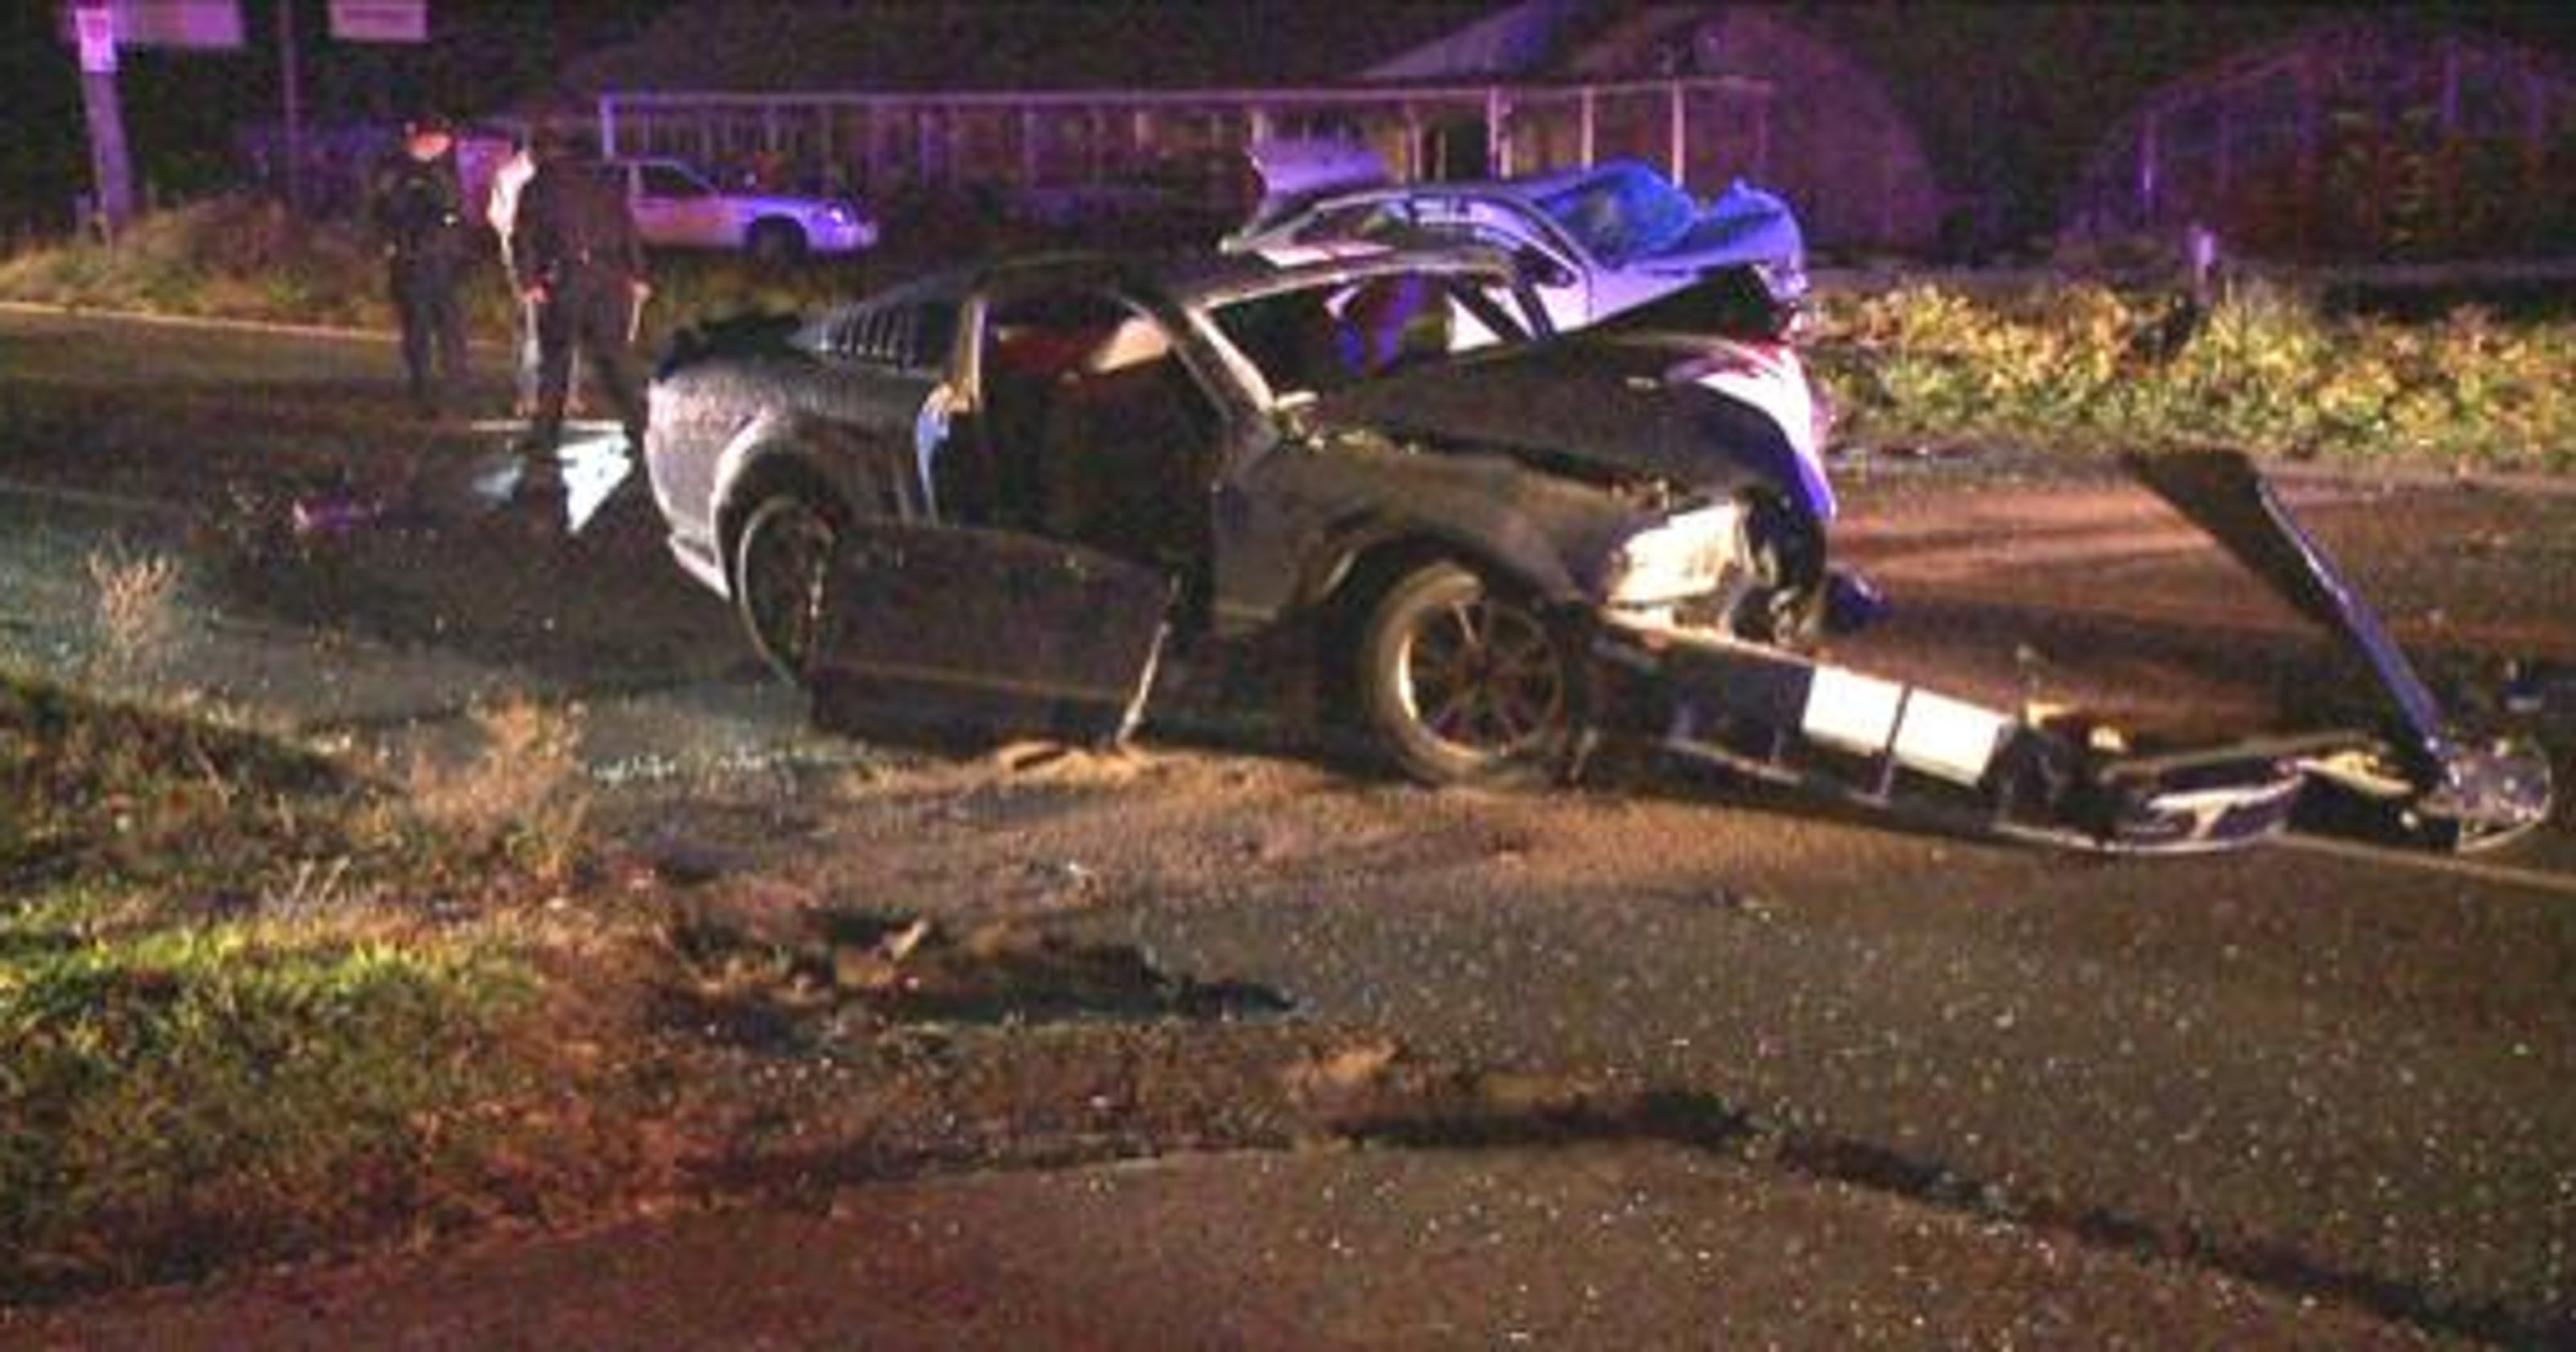 2 critically hurt in Meridian Street wreck